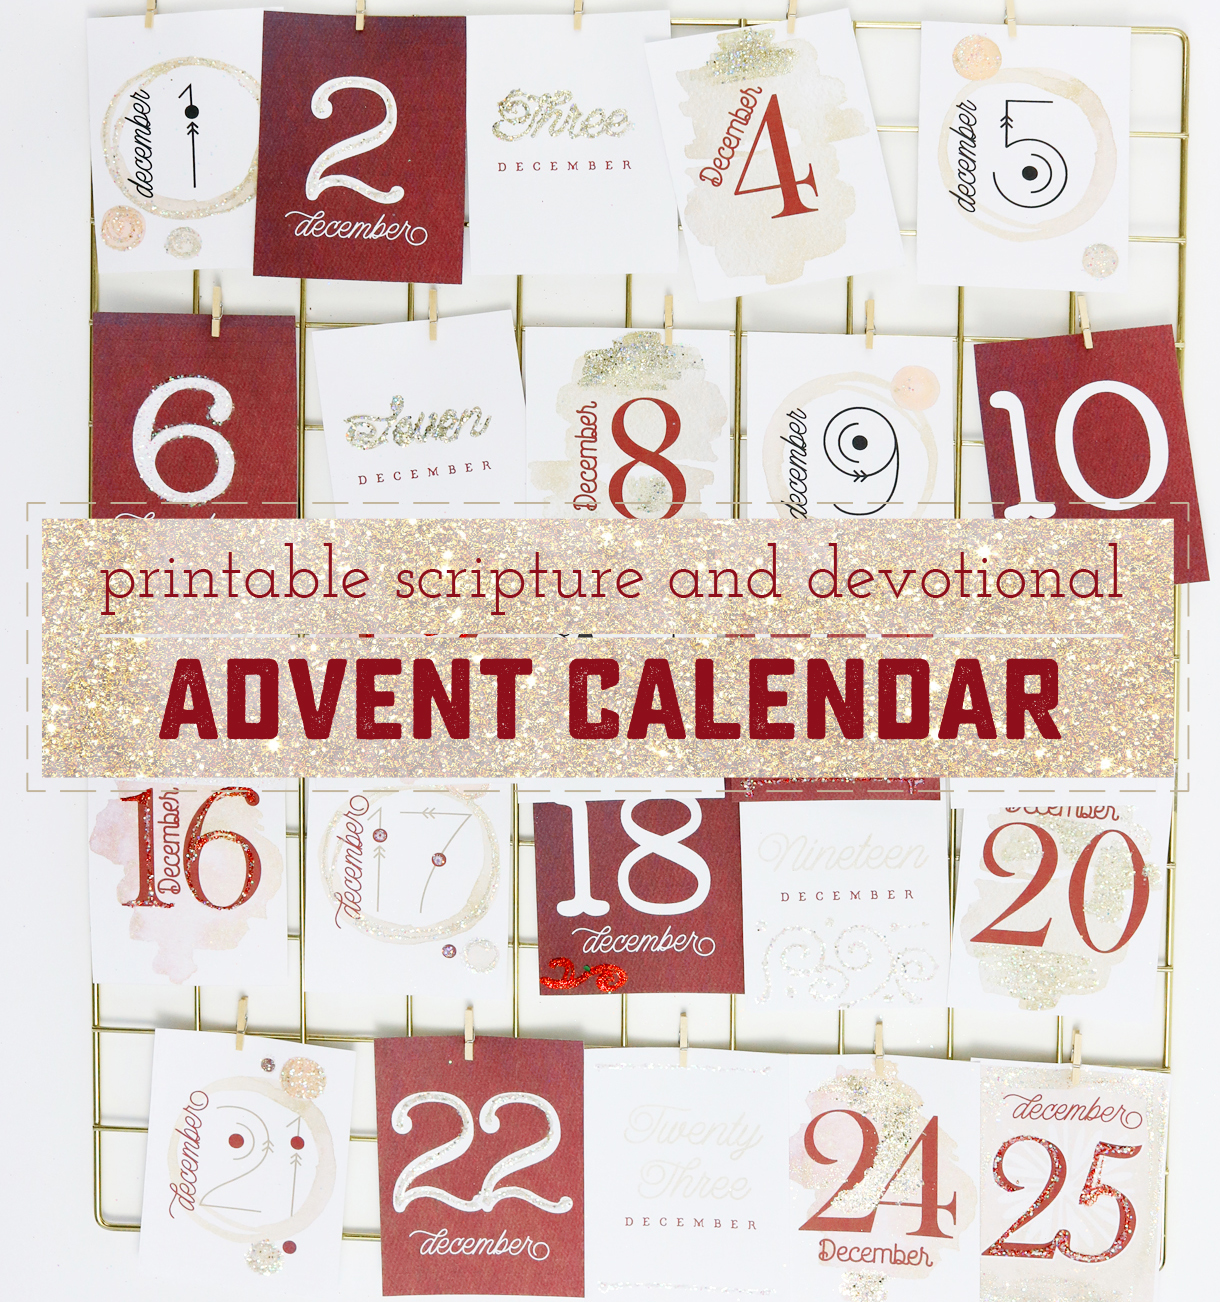 image about Advent Calendar Printable named How towards Produce a Eye-catching and Significant Printable Introduction